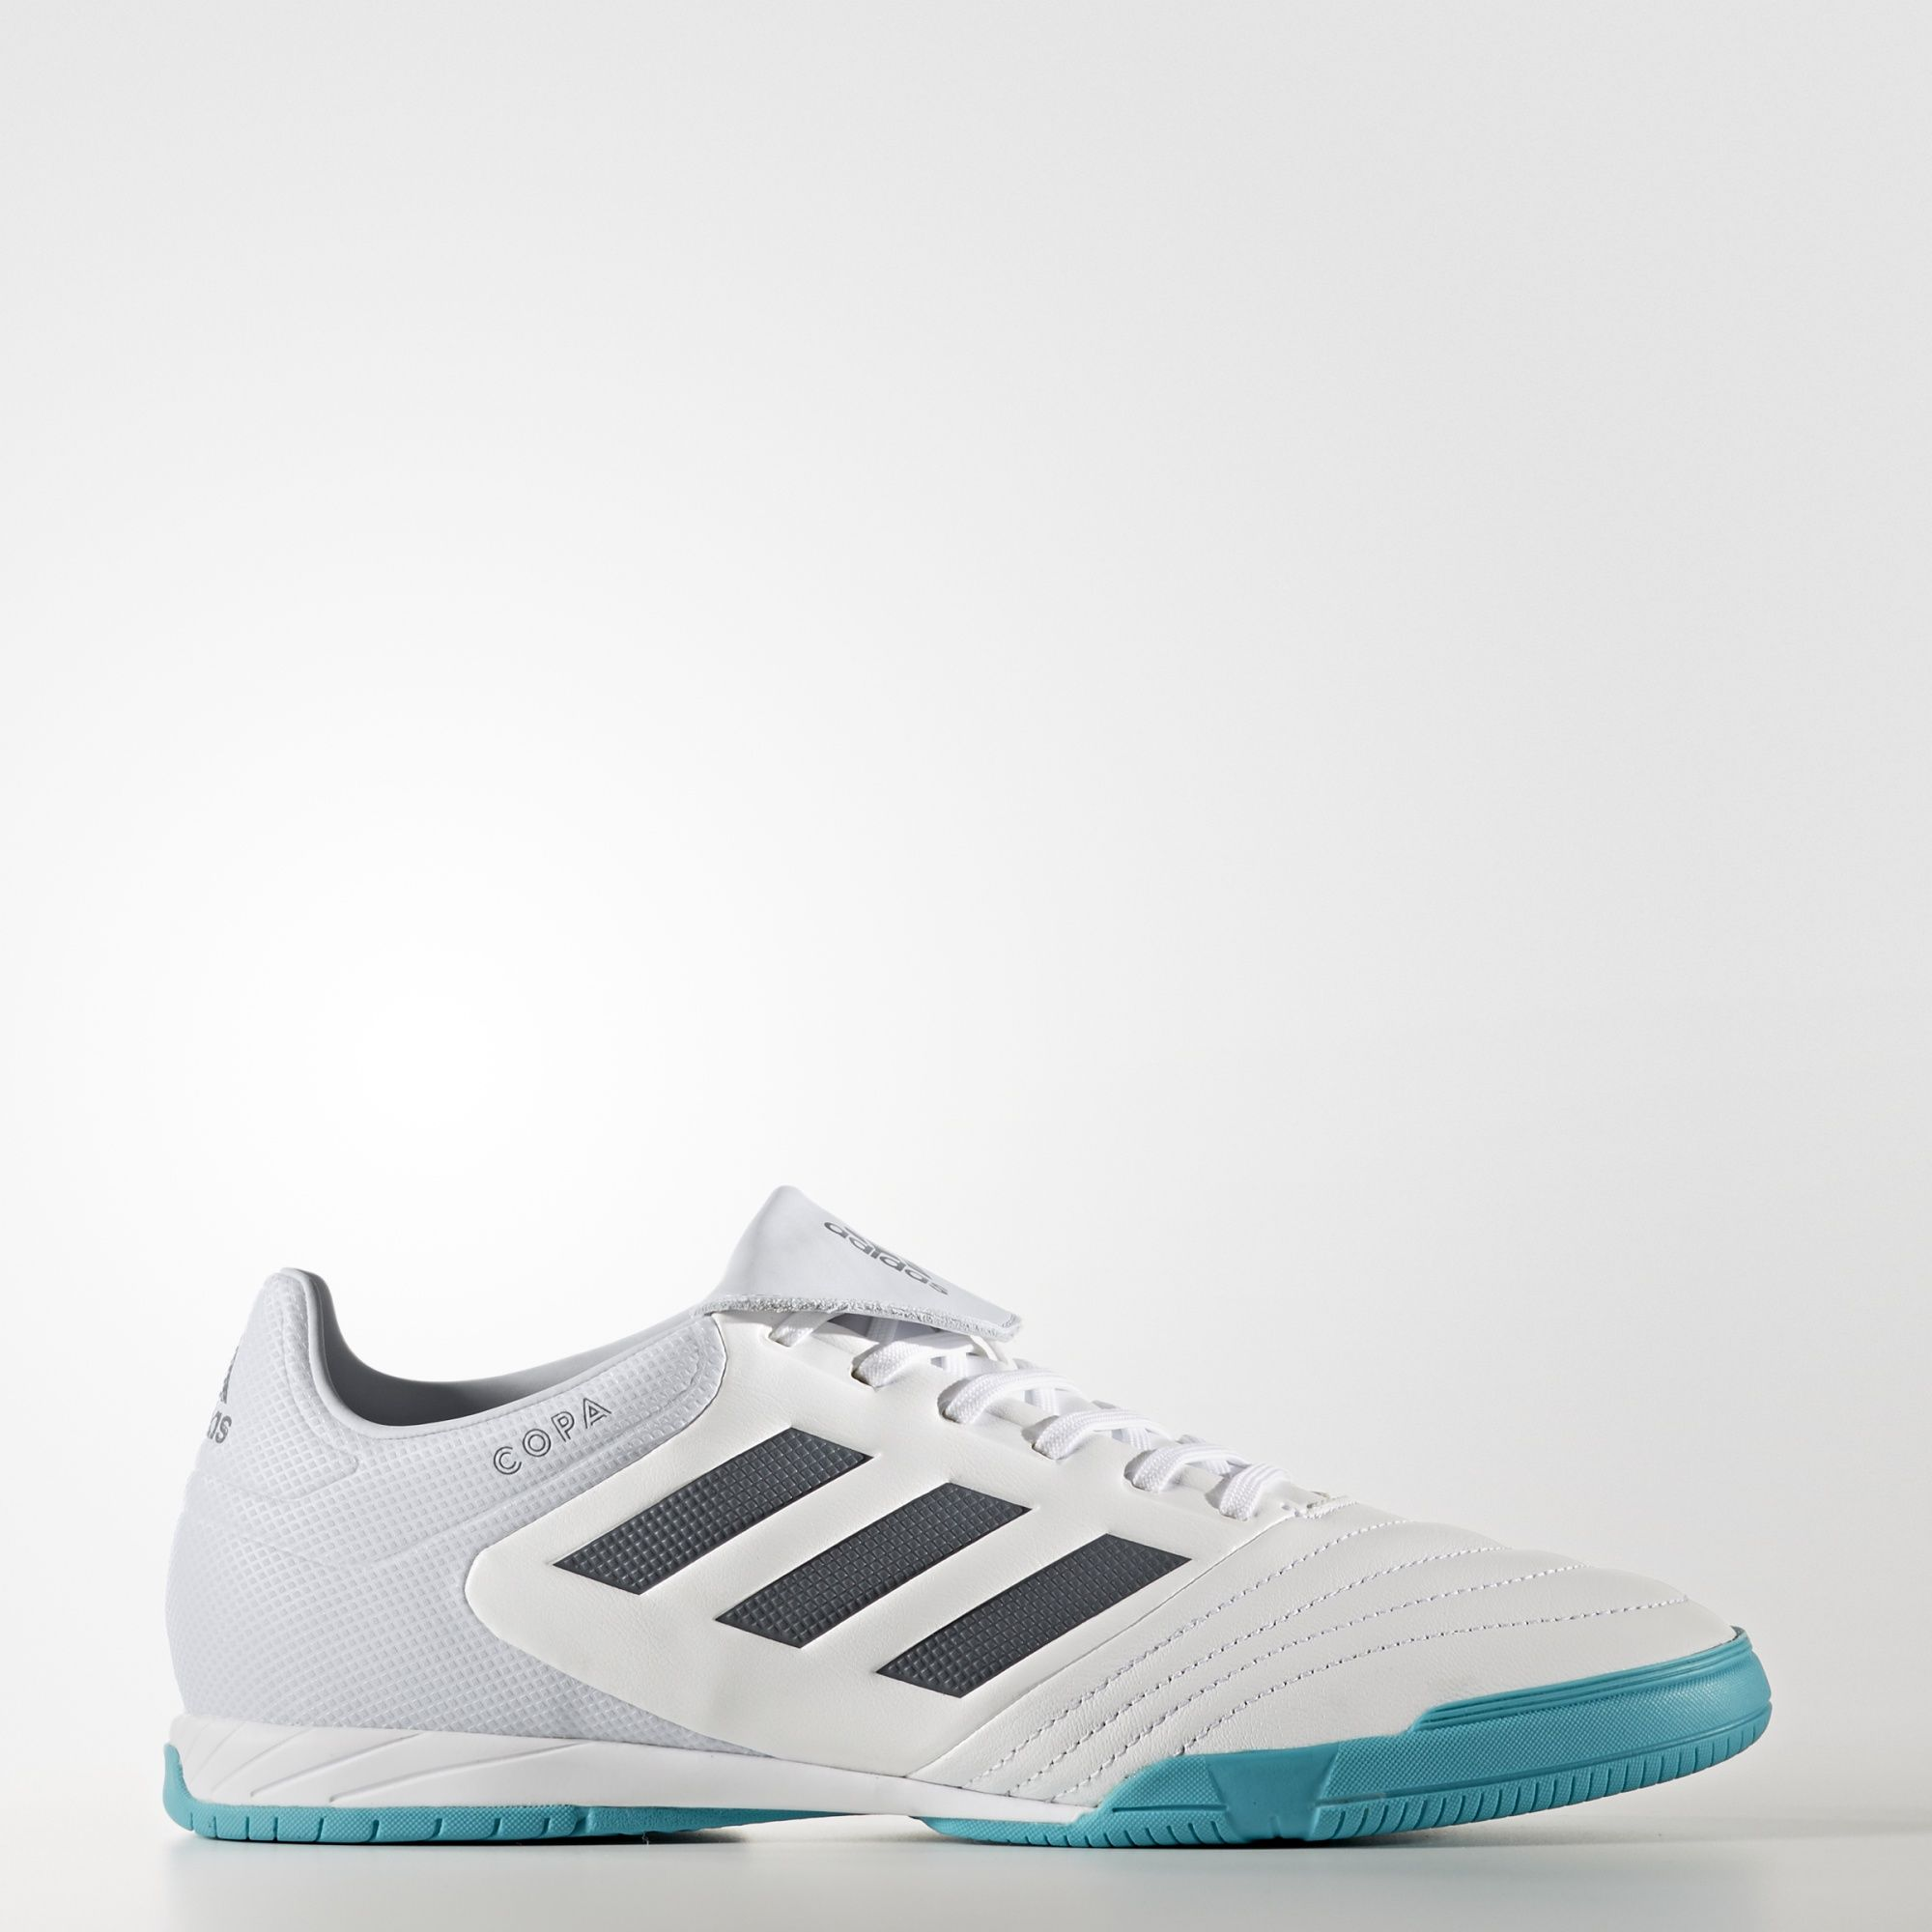 dfee984609d Adidas Copa Tango 17.3 IN Dust Storm - Footwear White   Onix   Clear Grey